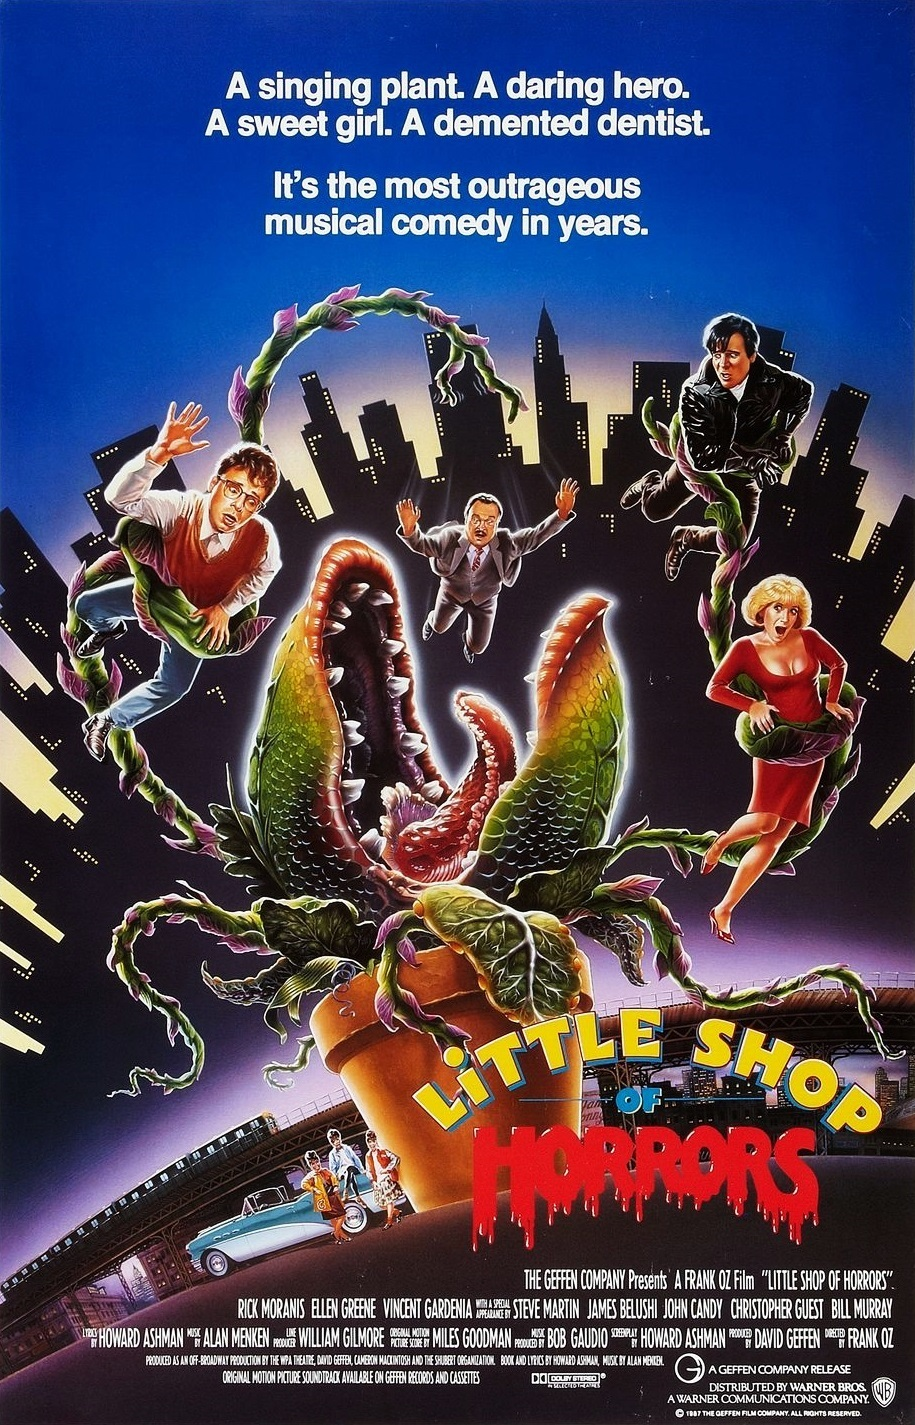 The poster for the movie version of Little Shop of Horrors.